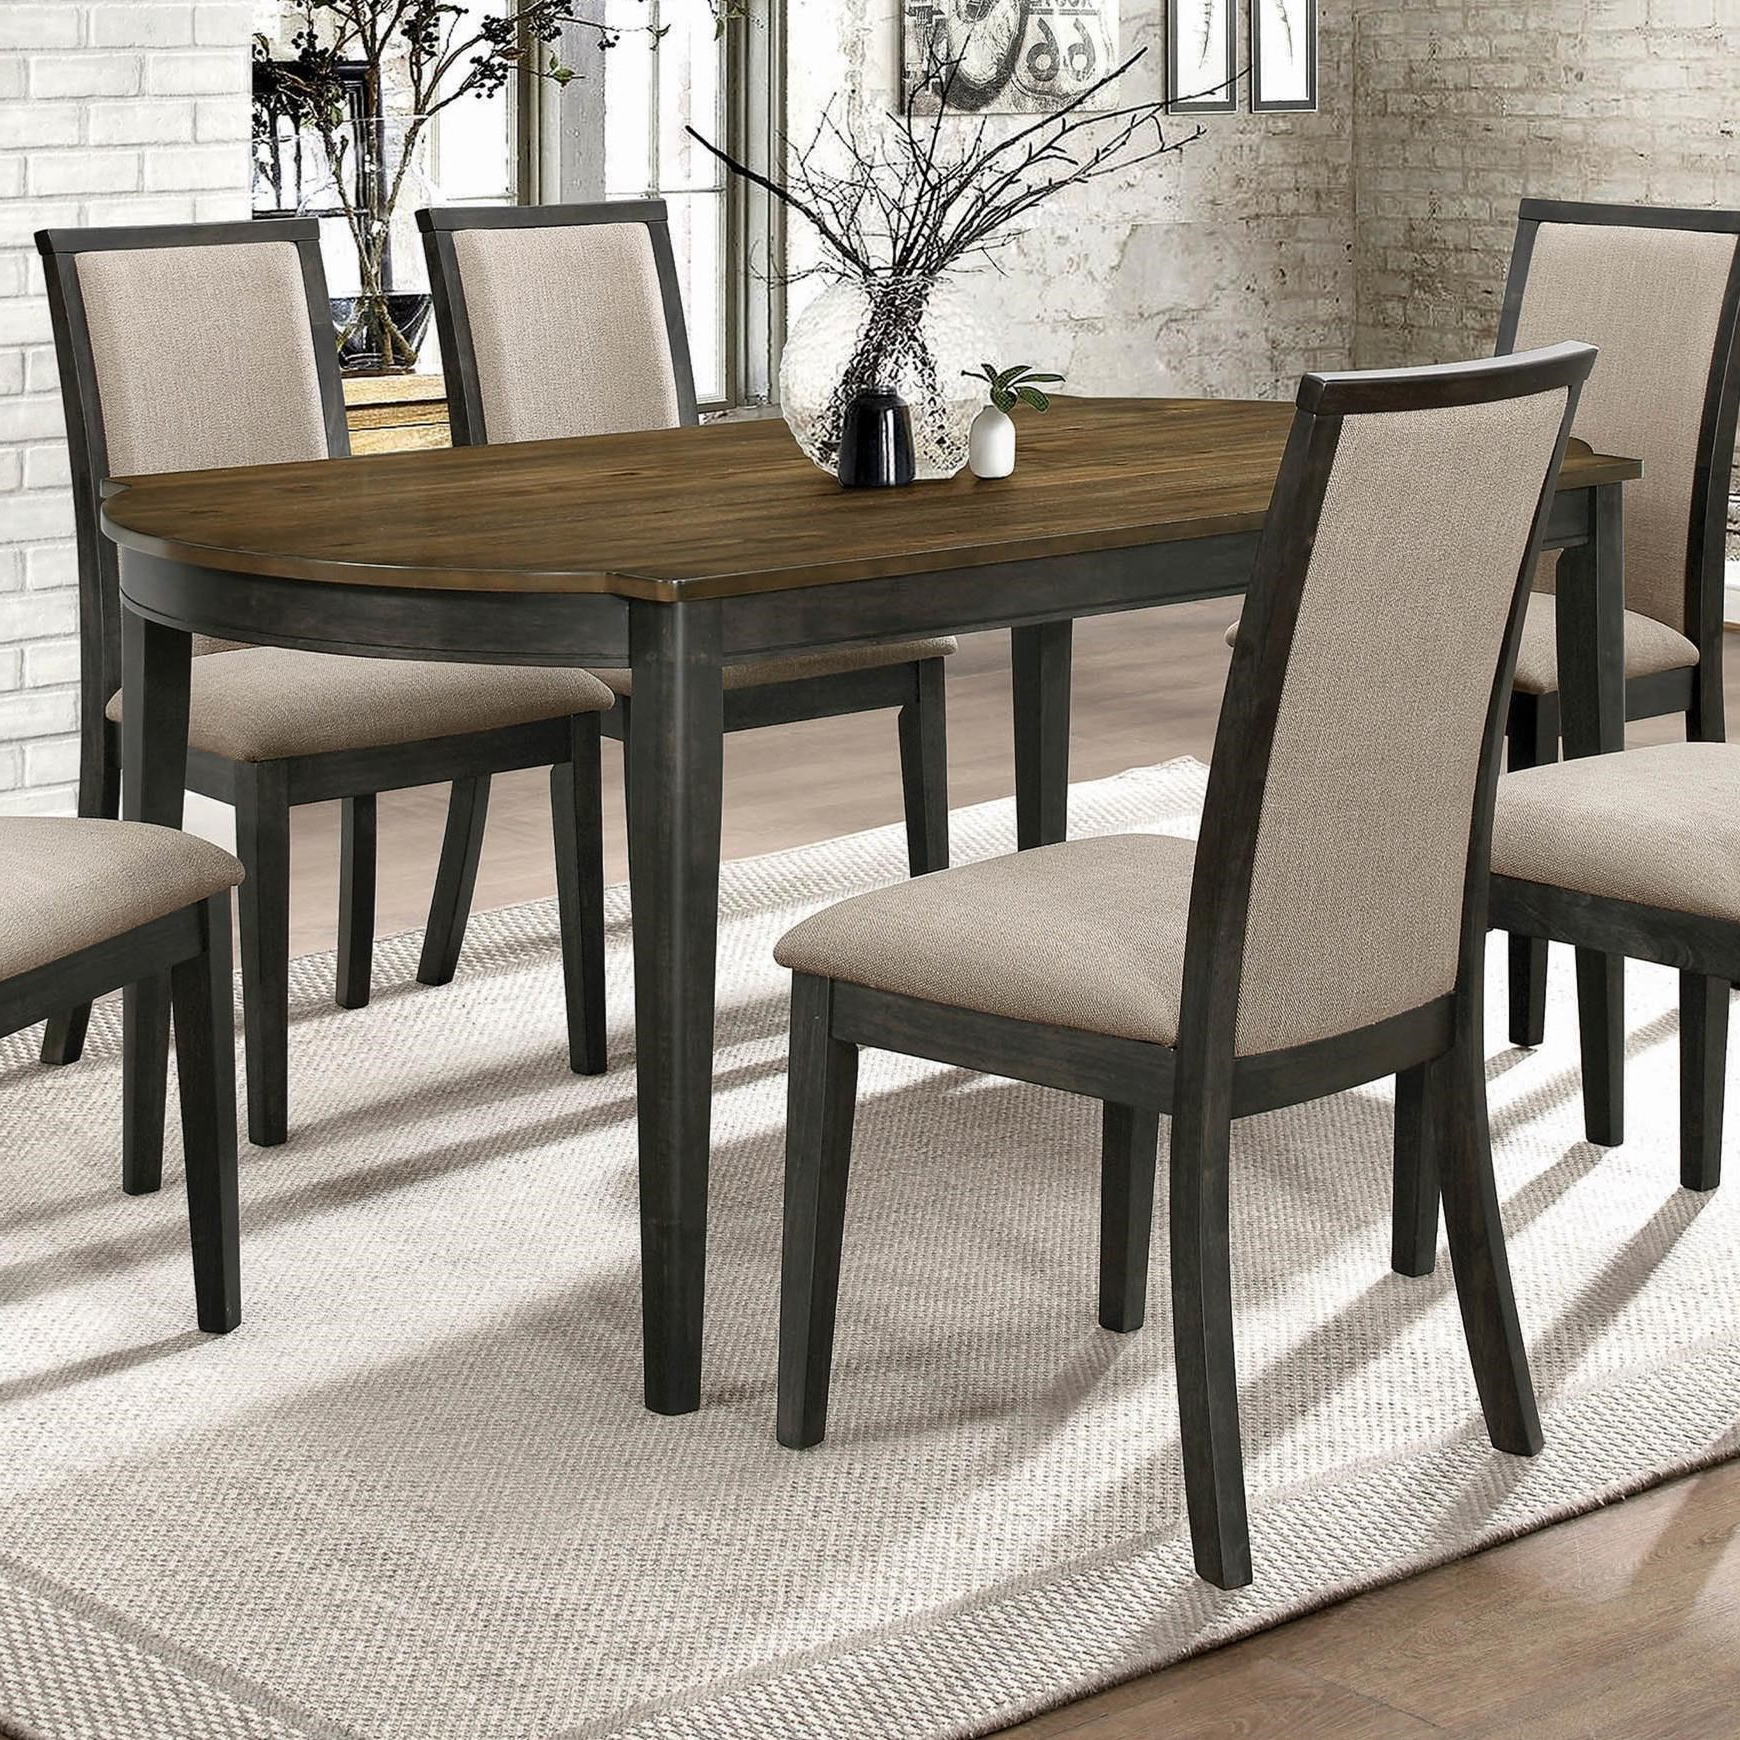 Coaster Clarksville Transitional Dining Table With 2 Tone With Current Charcoal Transitional 6 Seating Rectangular Dining Tables (View 12 of 30)